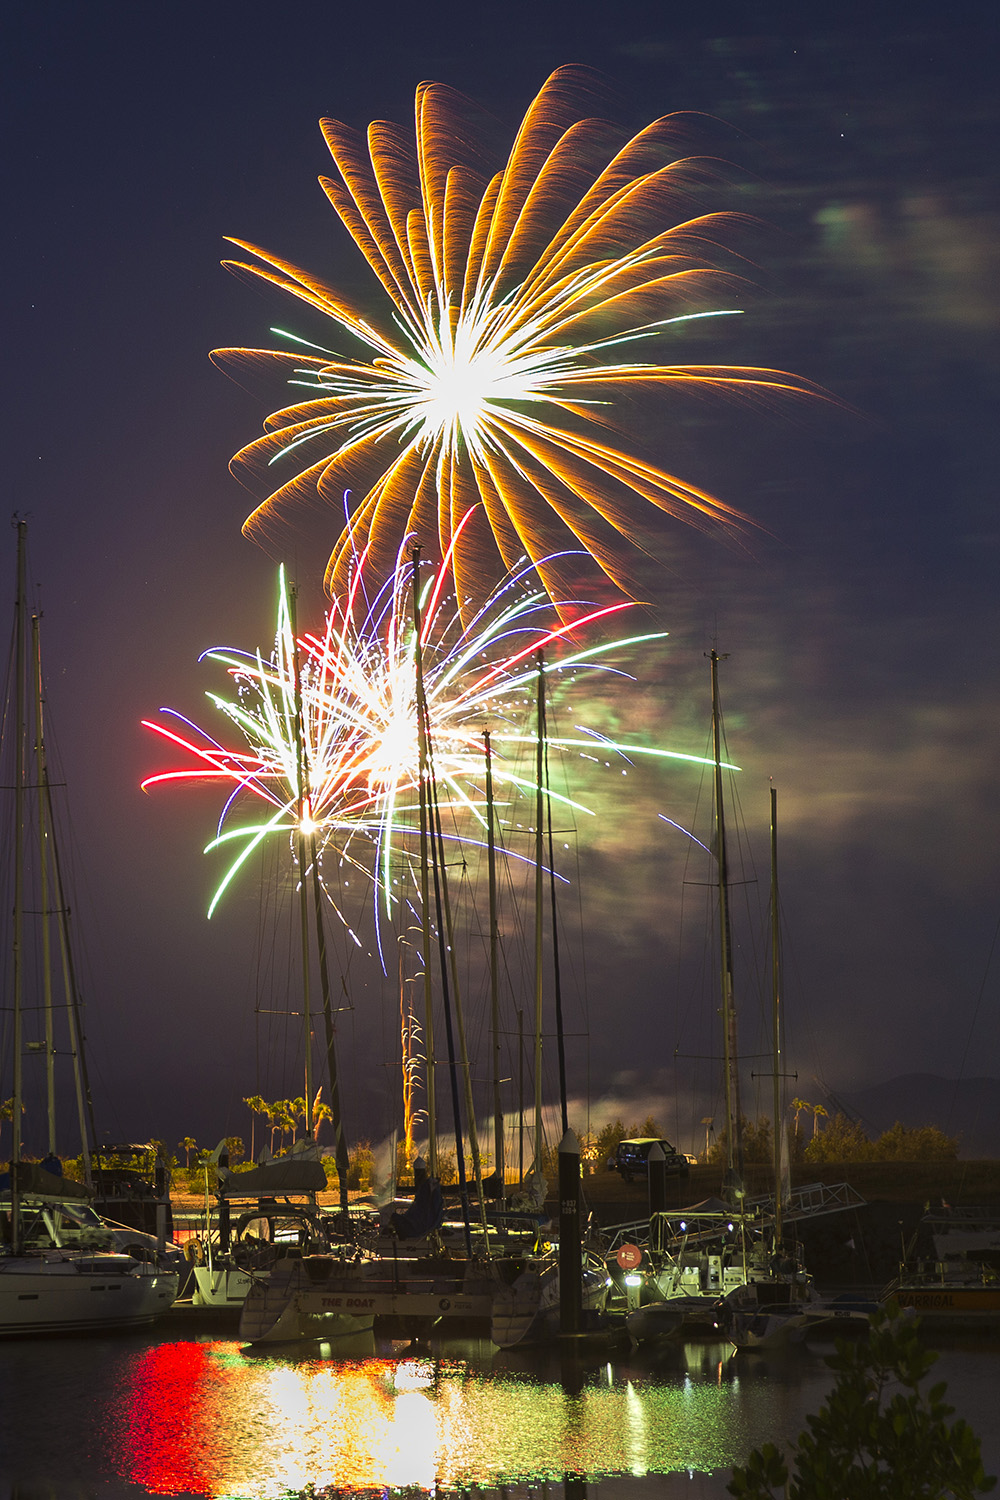 Fireworks set the scene at Magnetic Island - Andrea Francolini, SMIRW